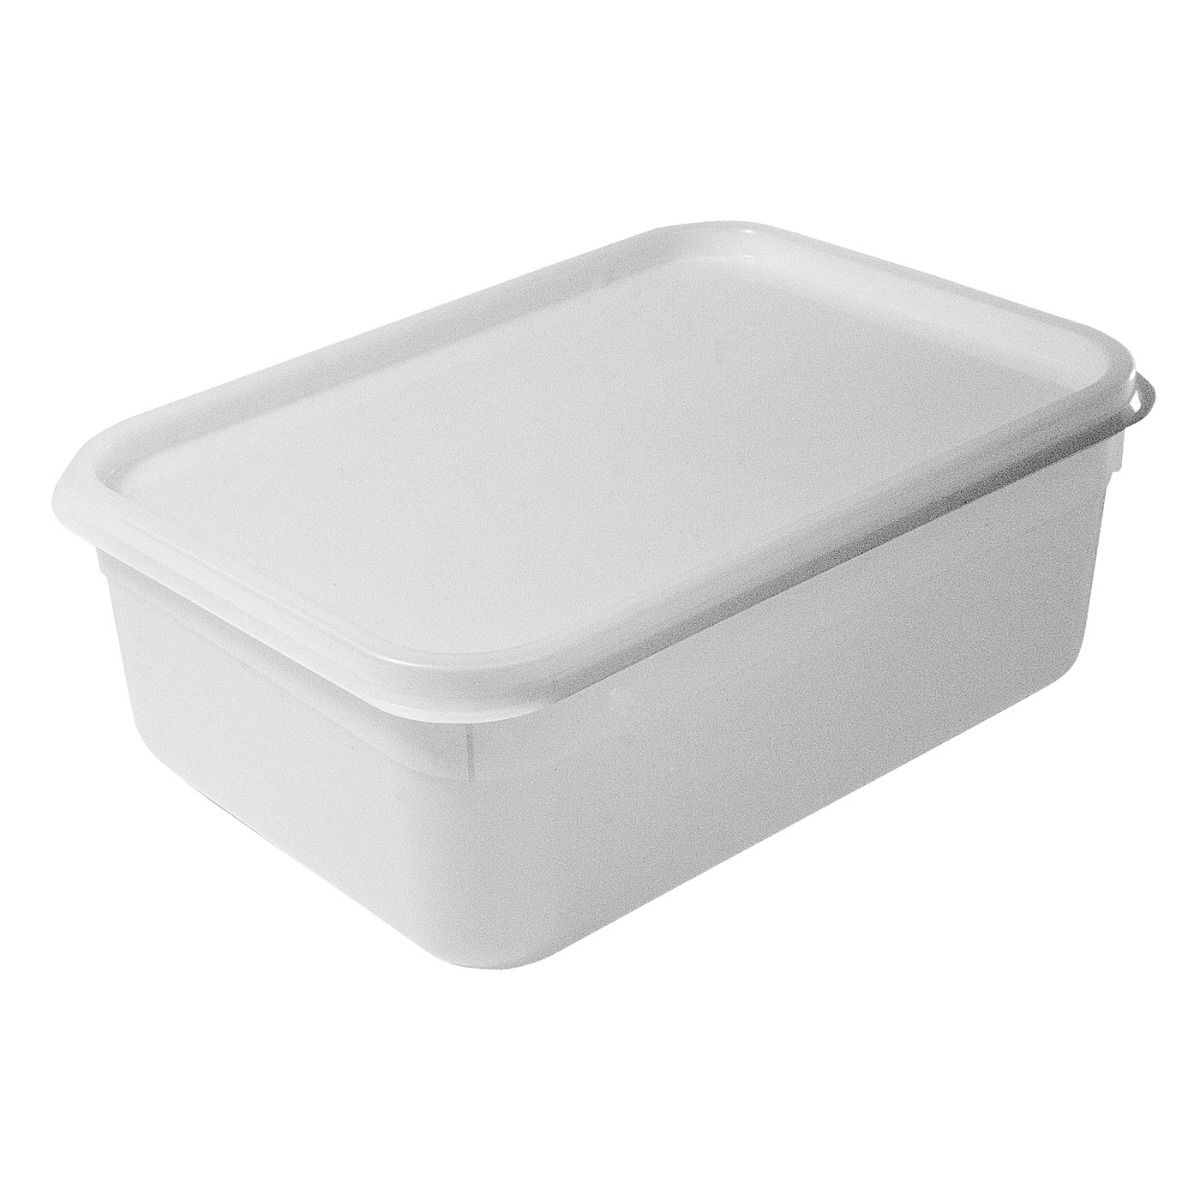 This Product Is Also Available In A Case 80 X Plastic Food Storage Container